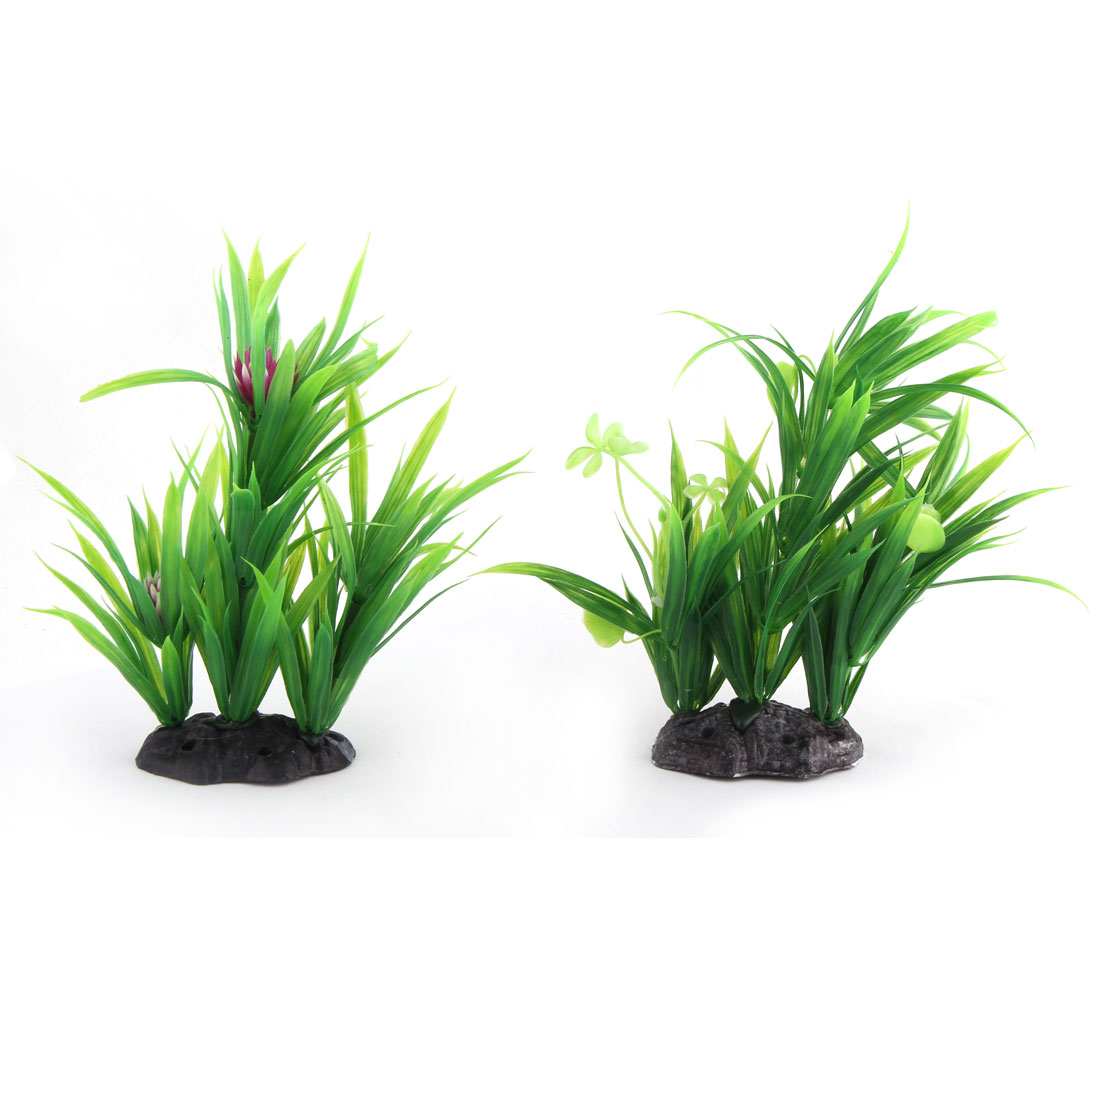 Household Aquarium Fish Tank Artificial Aquatic Scenery Waterweeds Plants 2 PCS